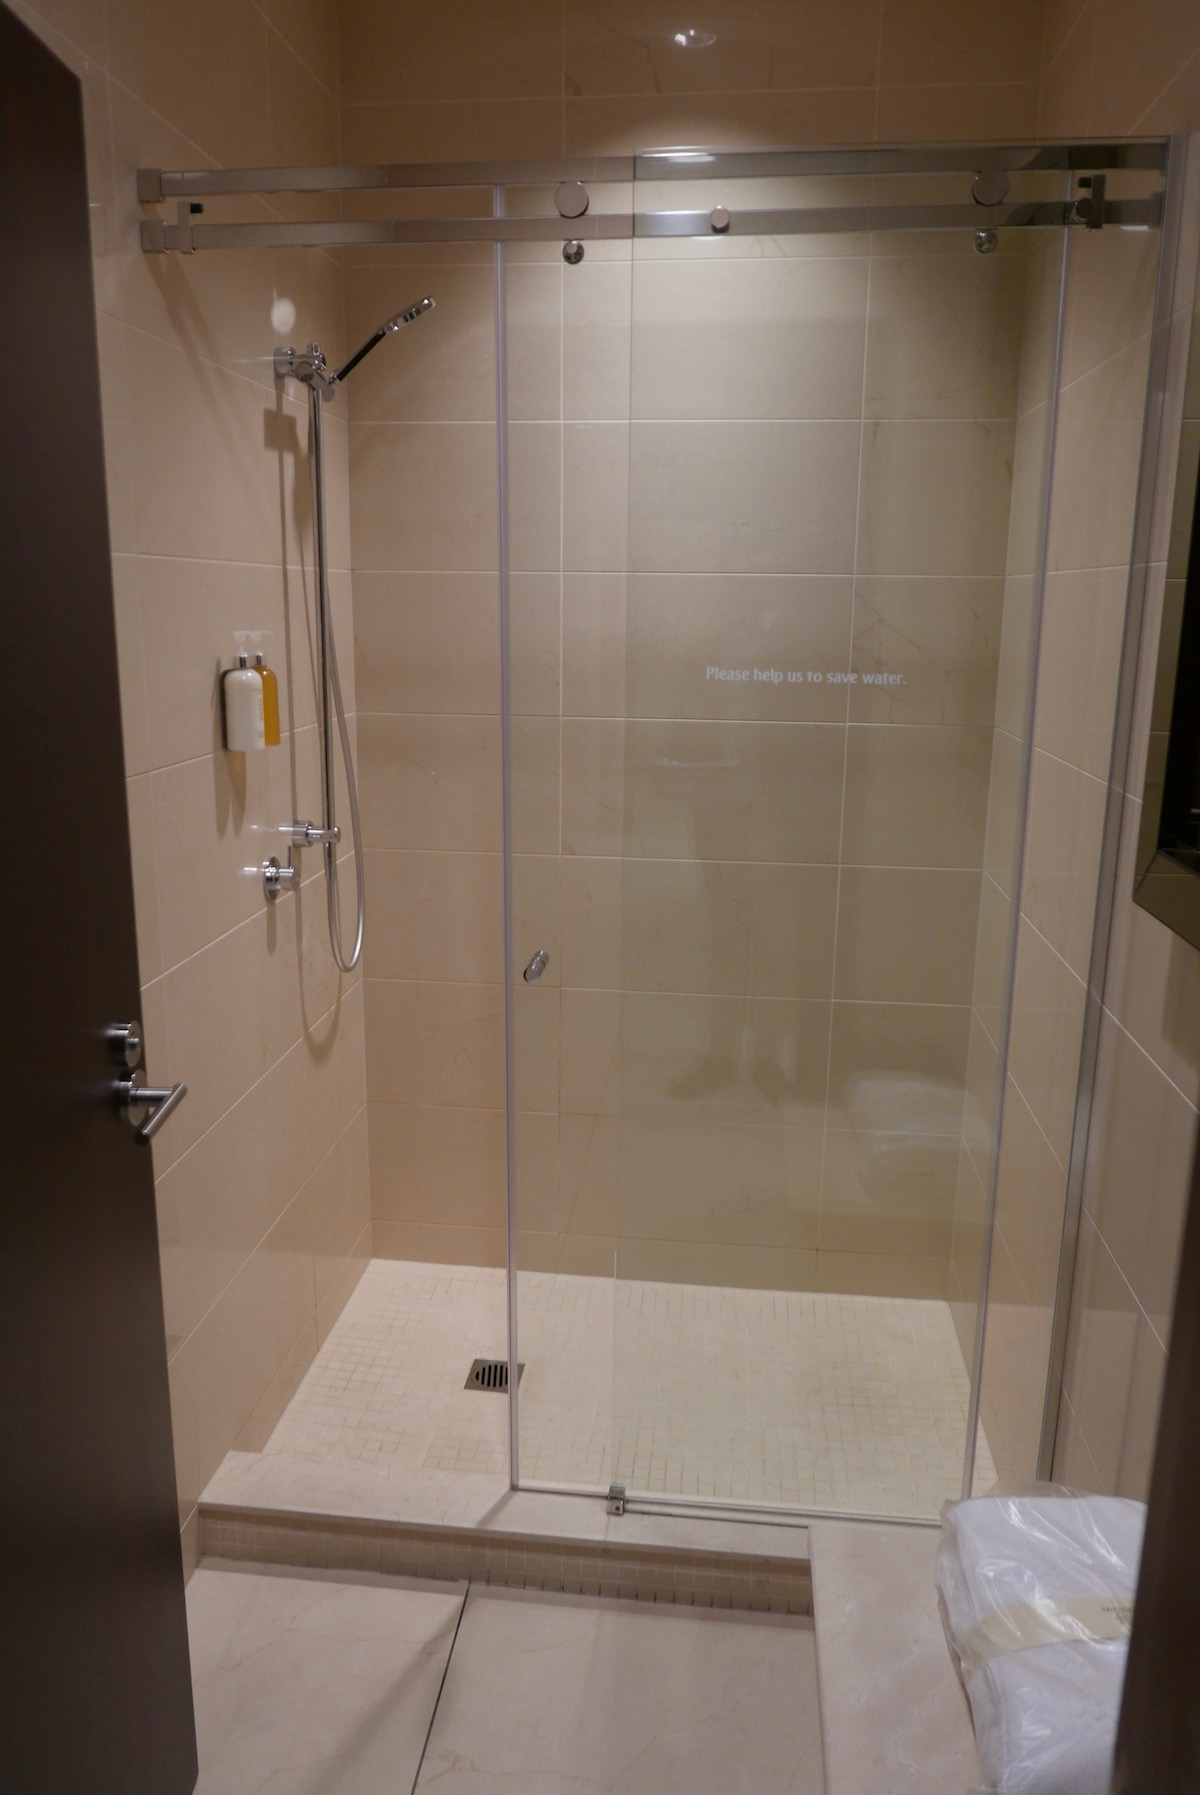 The Emirates Business & First Class Lounge Melbourne shower